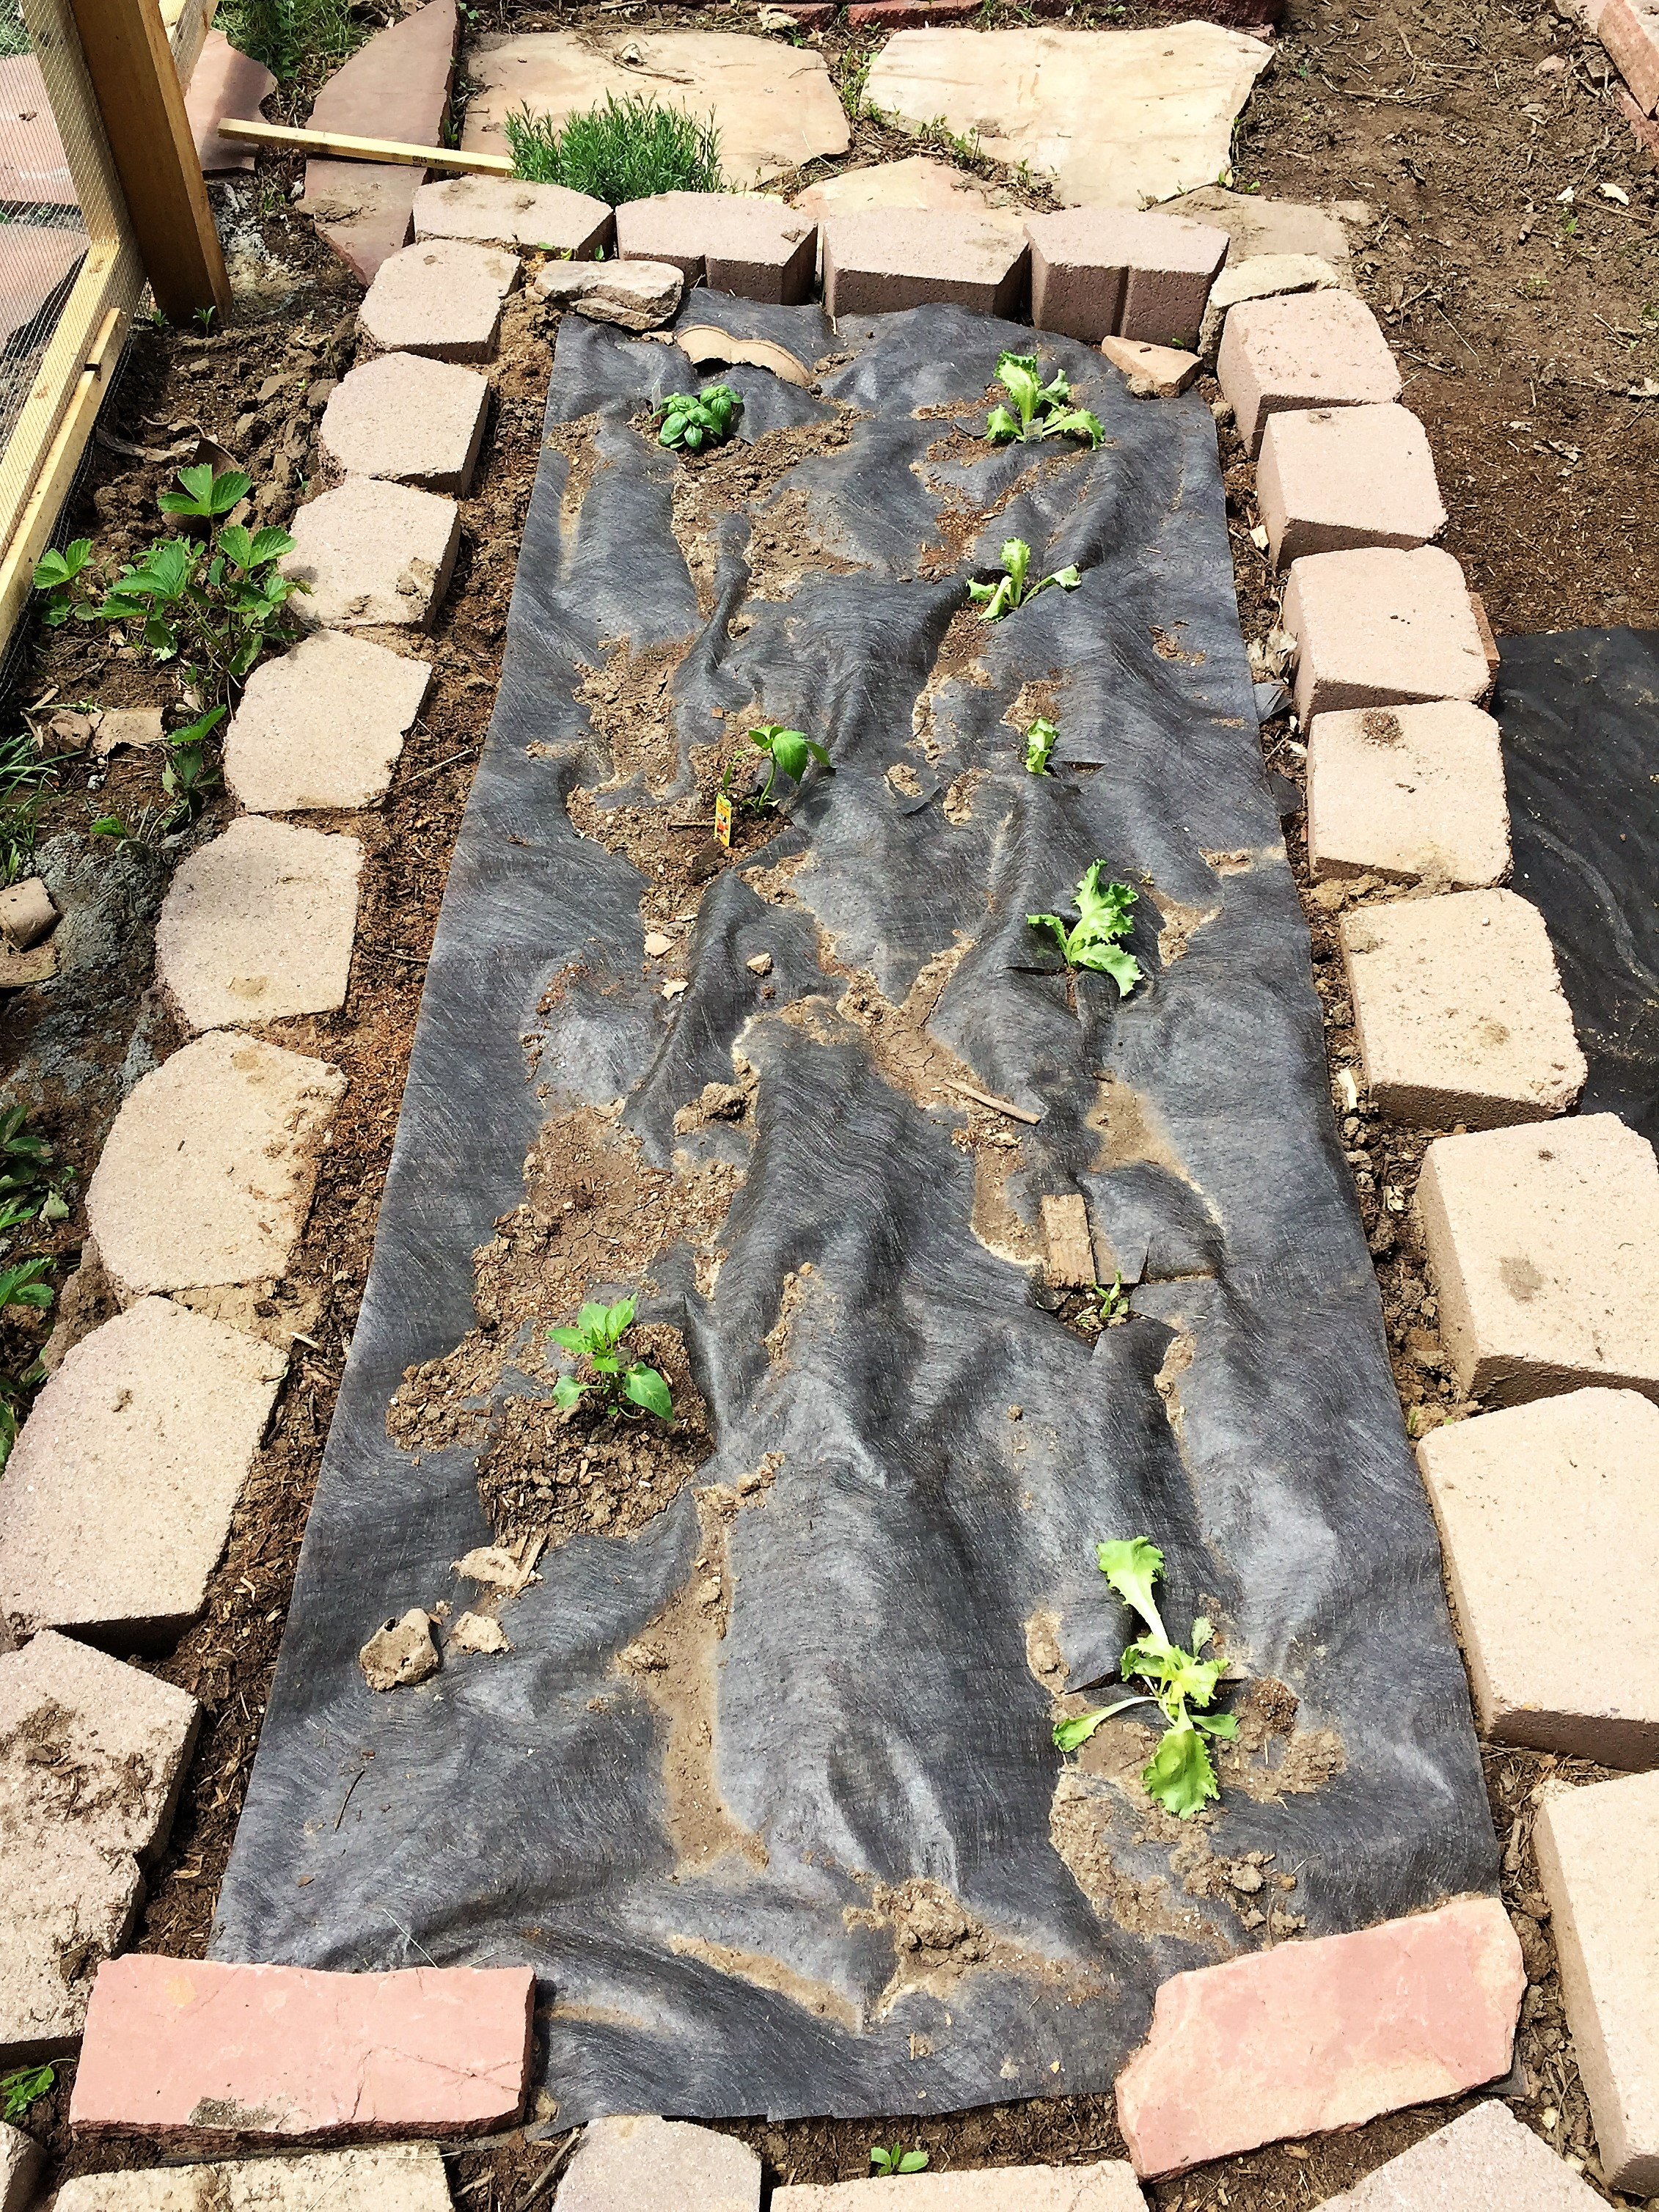 Lettuce, basil and peppers.